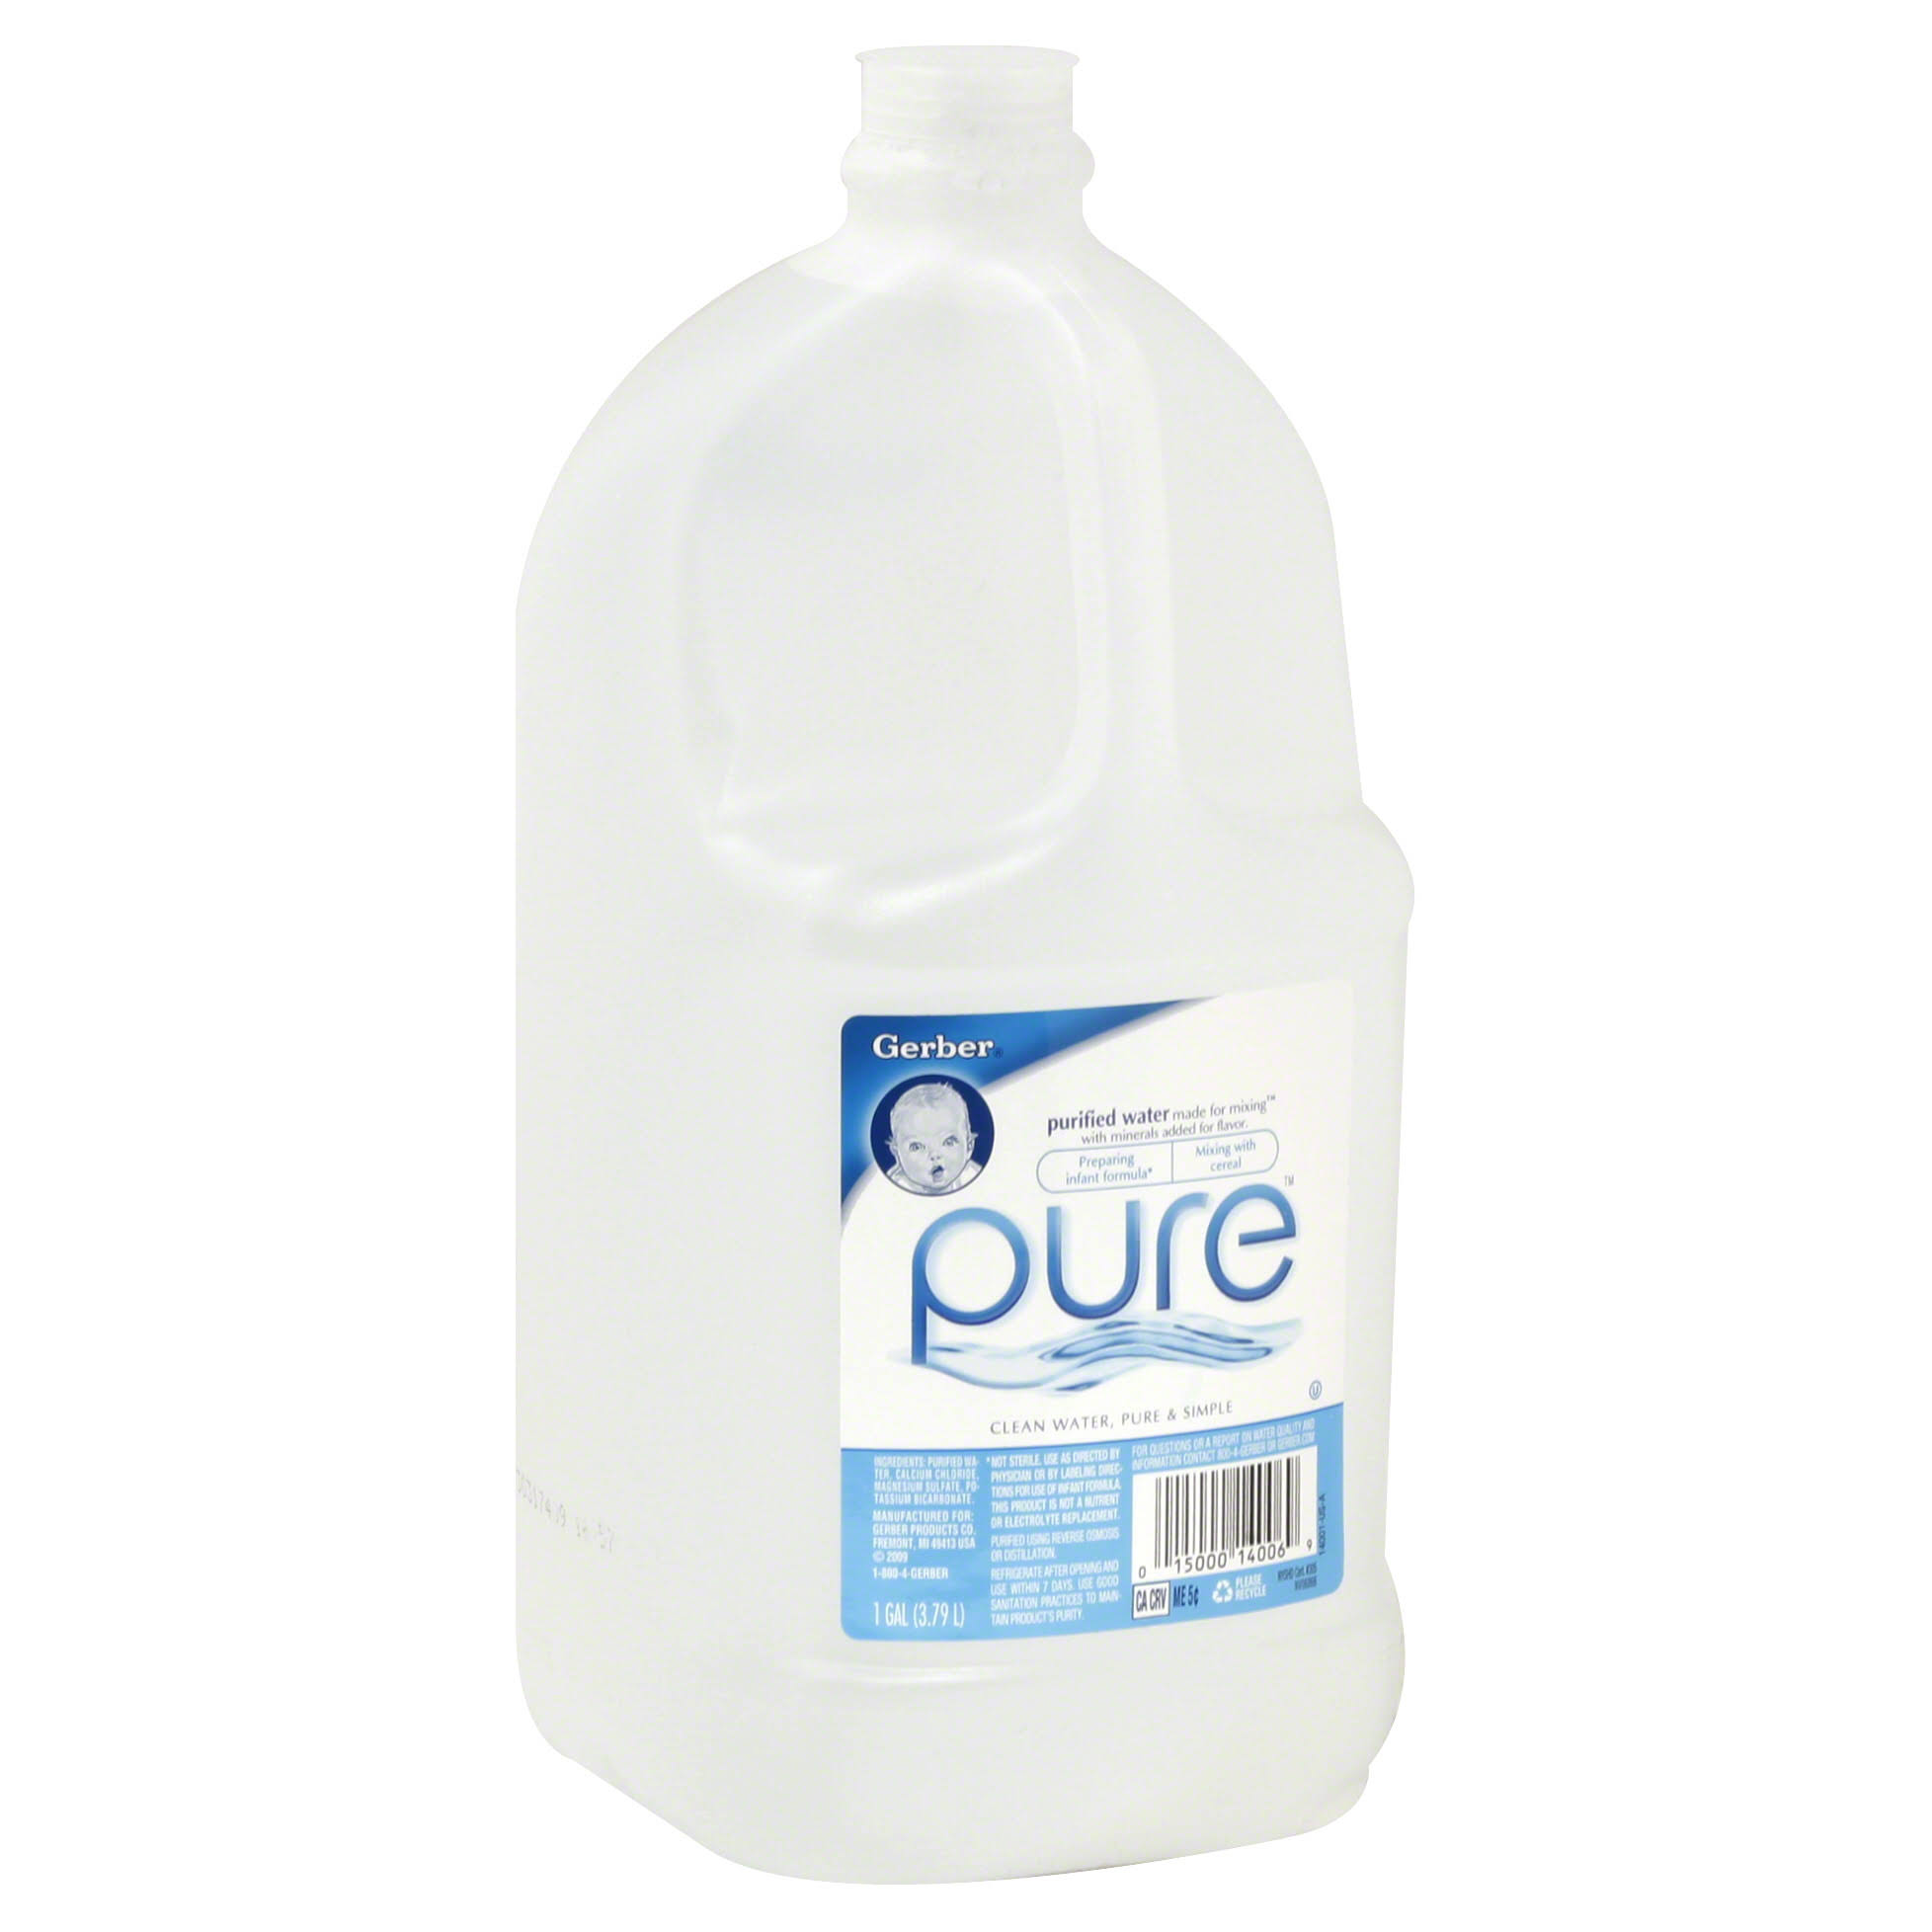 Gerber Pure Purified Water - with Minerals Birth+, 1gal